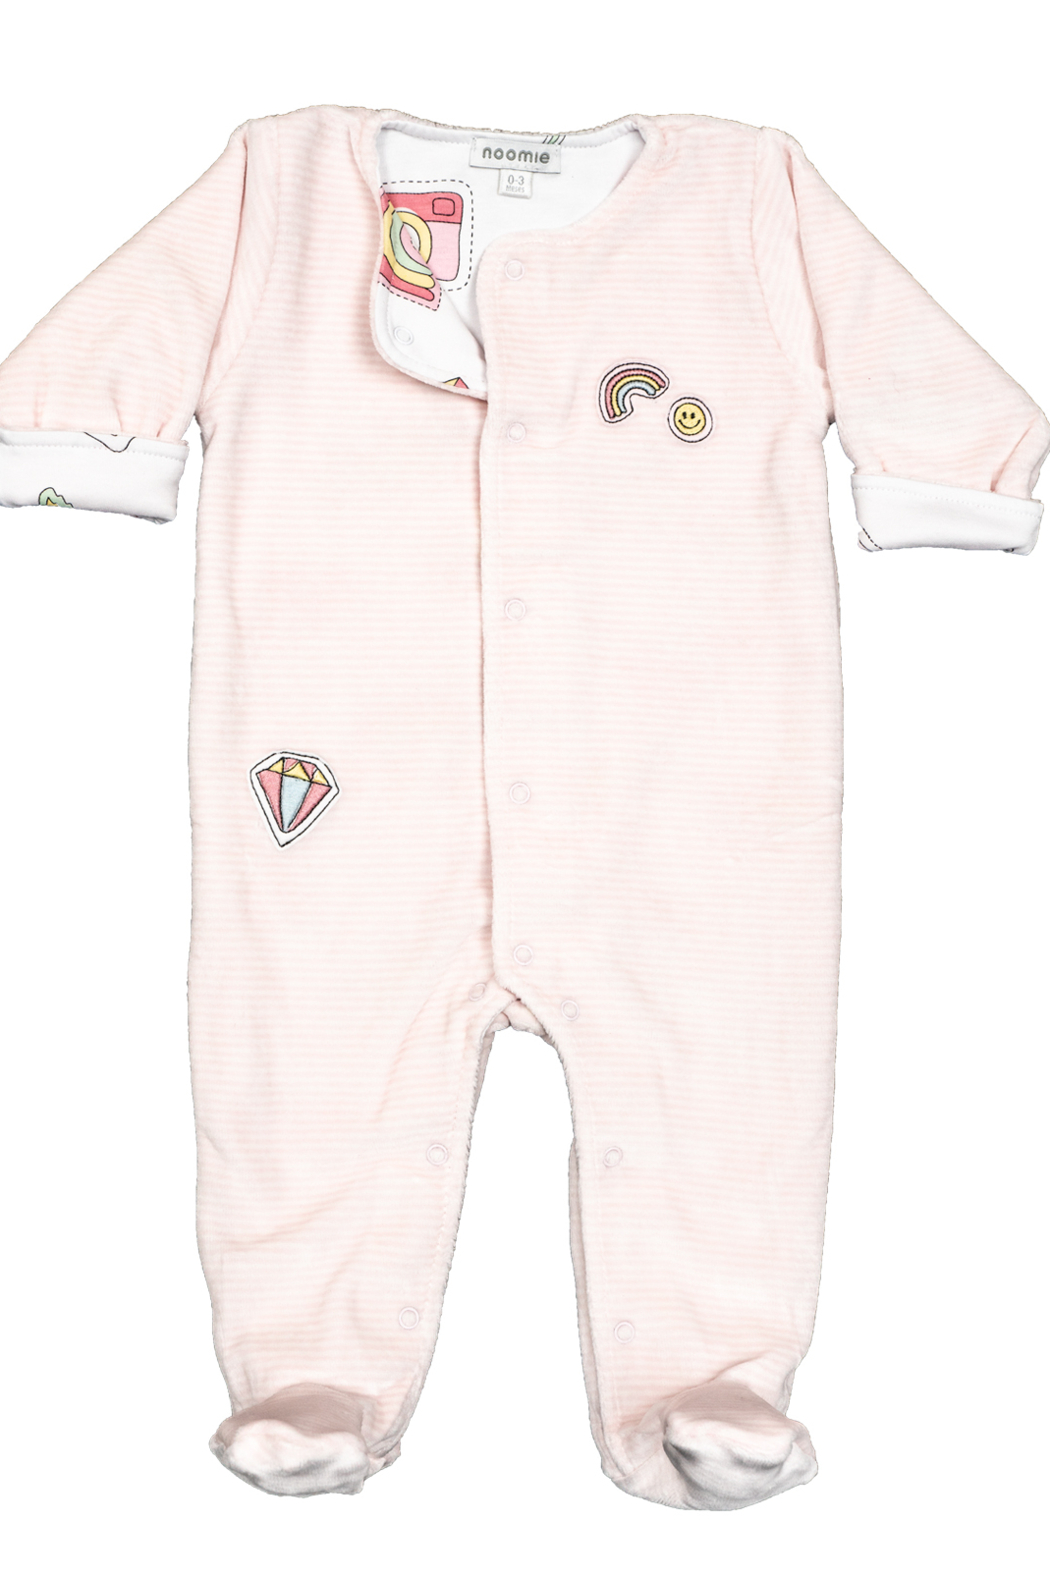 Noomie Pink Patches Velour Footie - Front Cropped Image